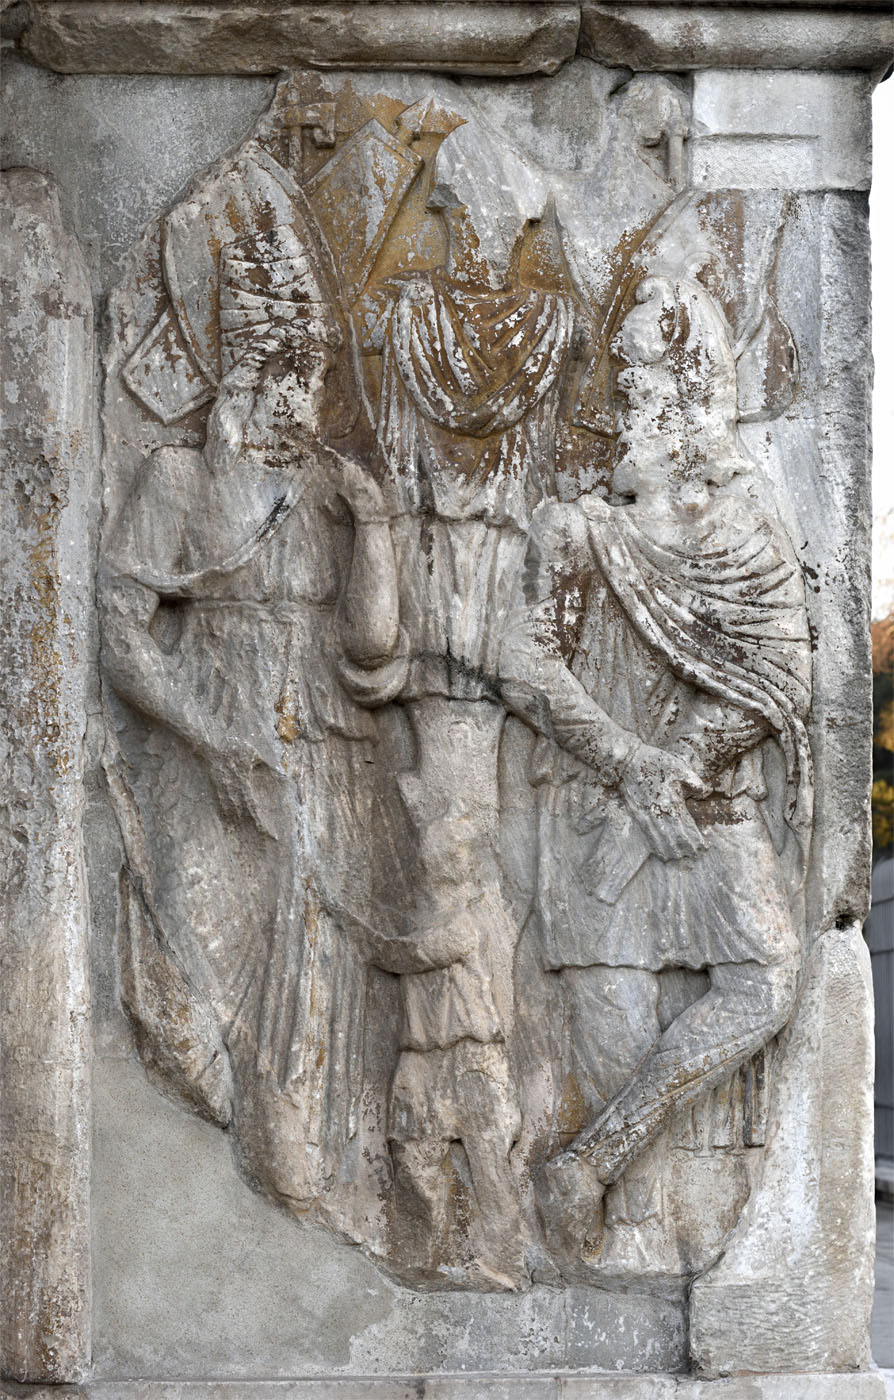 Captured barbars and the trophy. Relief of the column plinth. Marble. 312—315 CE. Rome, Arch of Constantine, North face